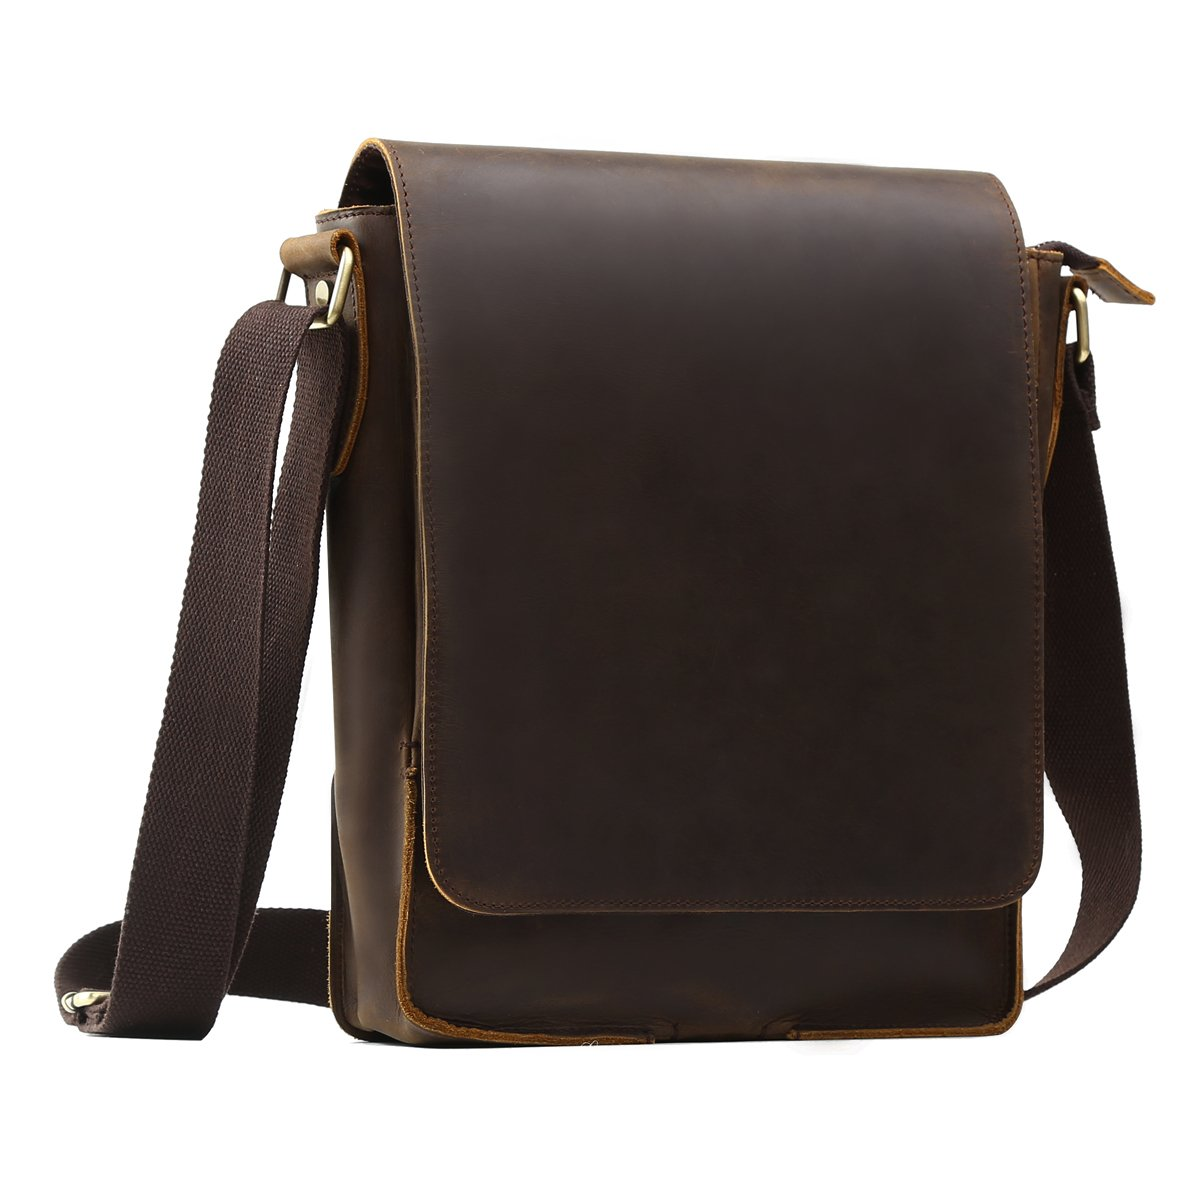 Mens Distressed Real Leather Cross Body Shoulder Travel Messenger Bag For Kindle iPad Tablet Flap over Vintage SatchelRucksack Convertible Office Notebook Holiday Utility Bag Ideal Organiser Pouch